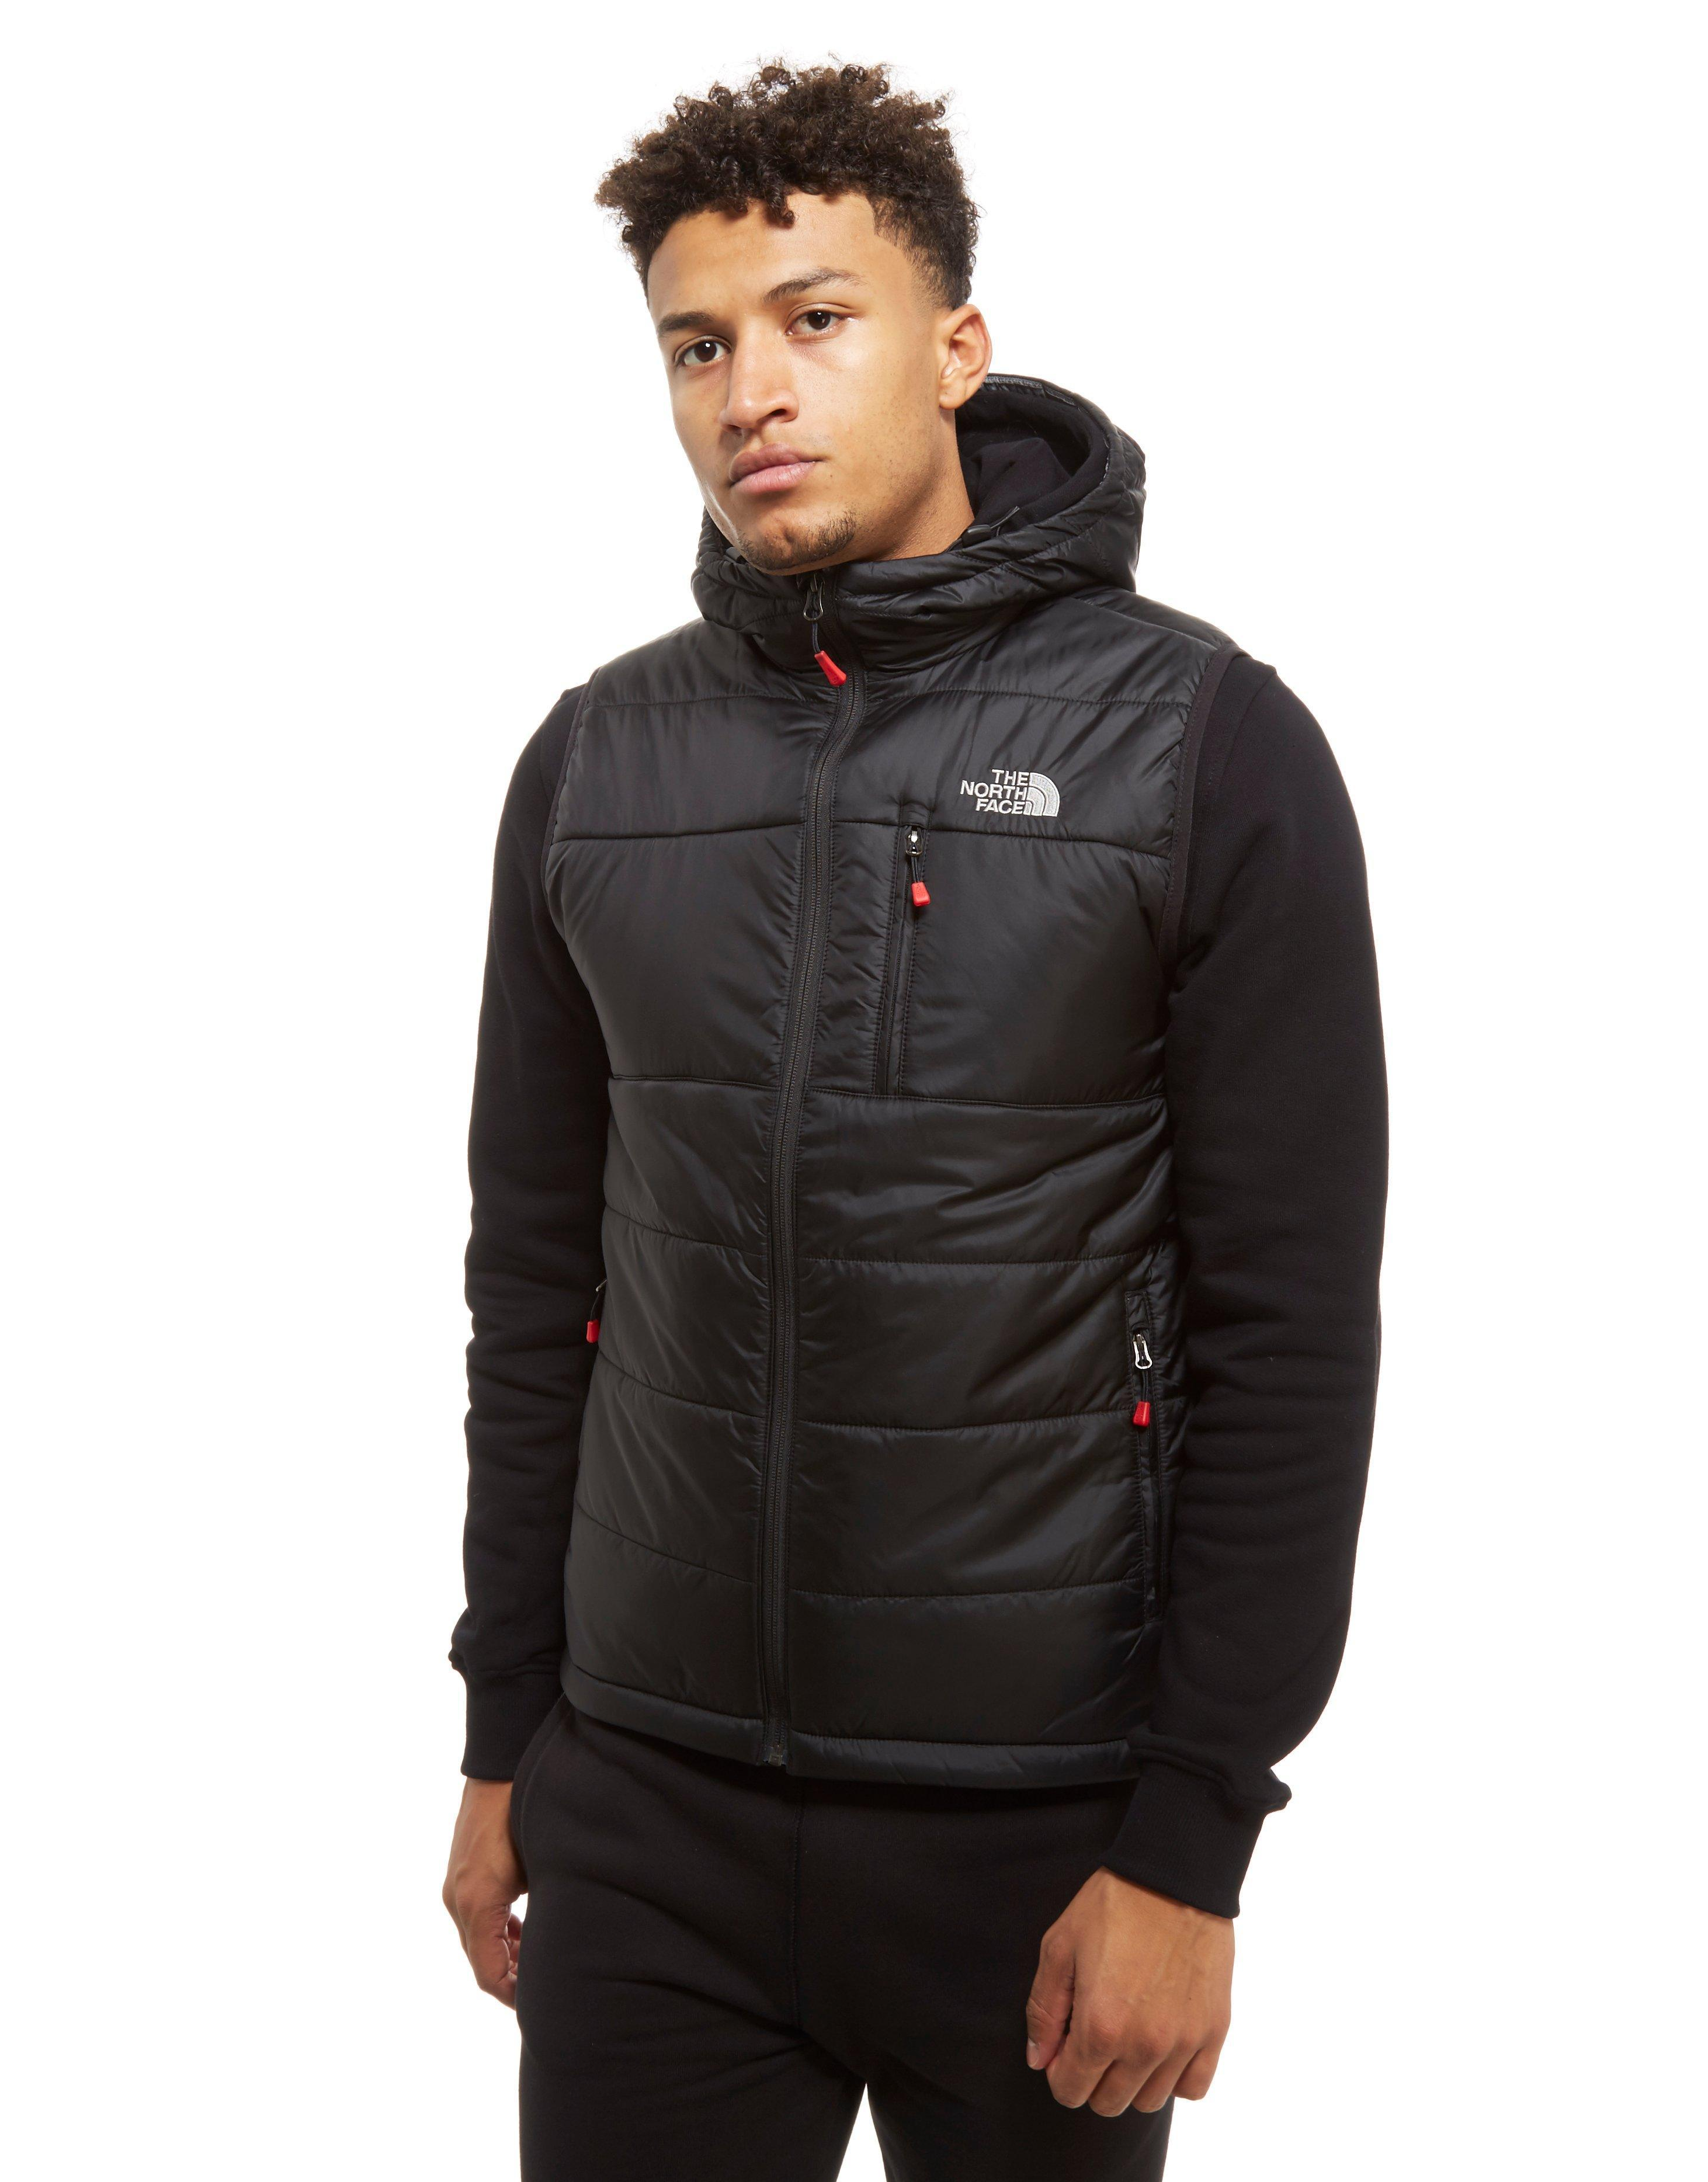 ... Jacket with JD The North Face Khotan Gilet in Black for Men - Lyst . a03377cfb